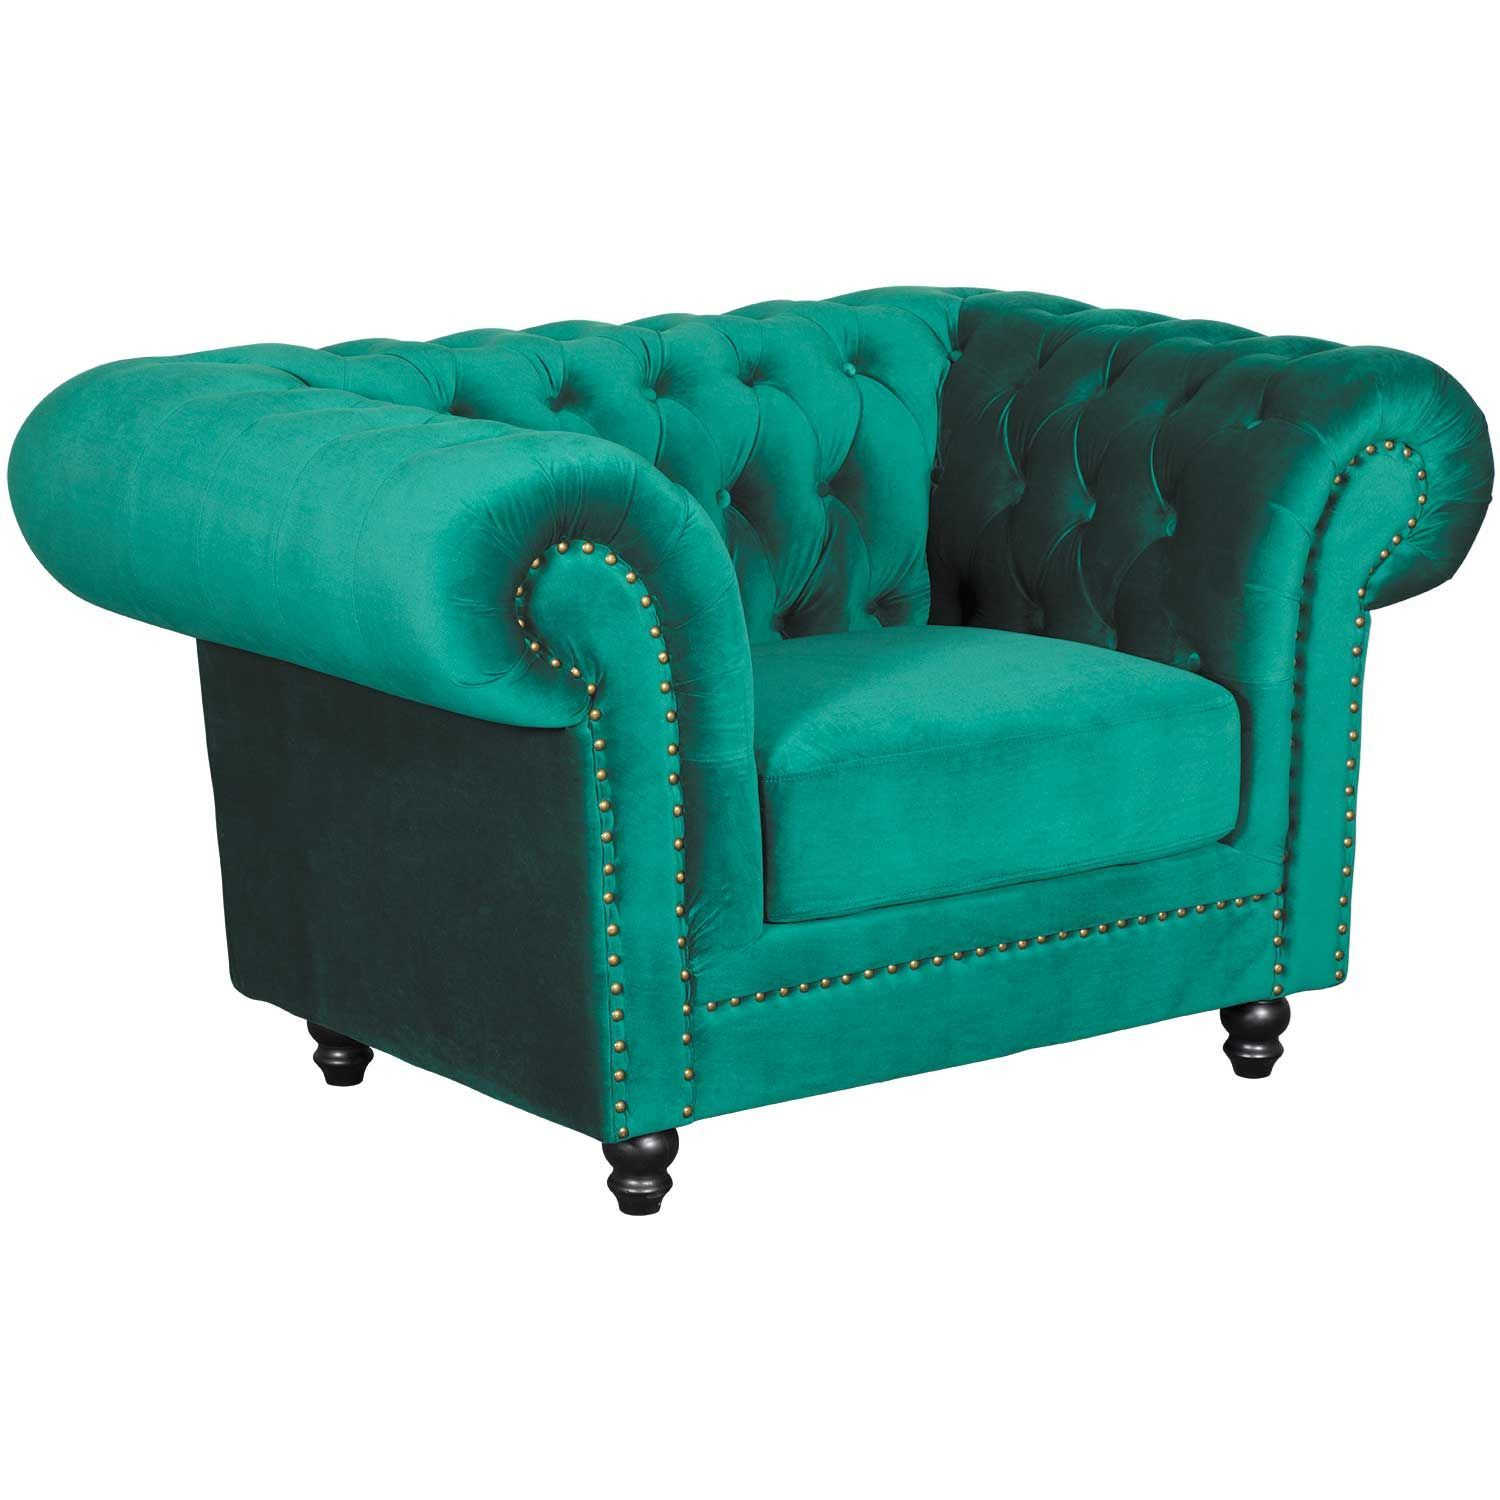 Callie Tufted Emerald Chair | My225 S1/cc 42 | Cambridge Home | Afw With Callie Sofa Chairs (Photo 18 of 20)